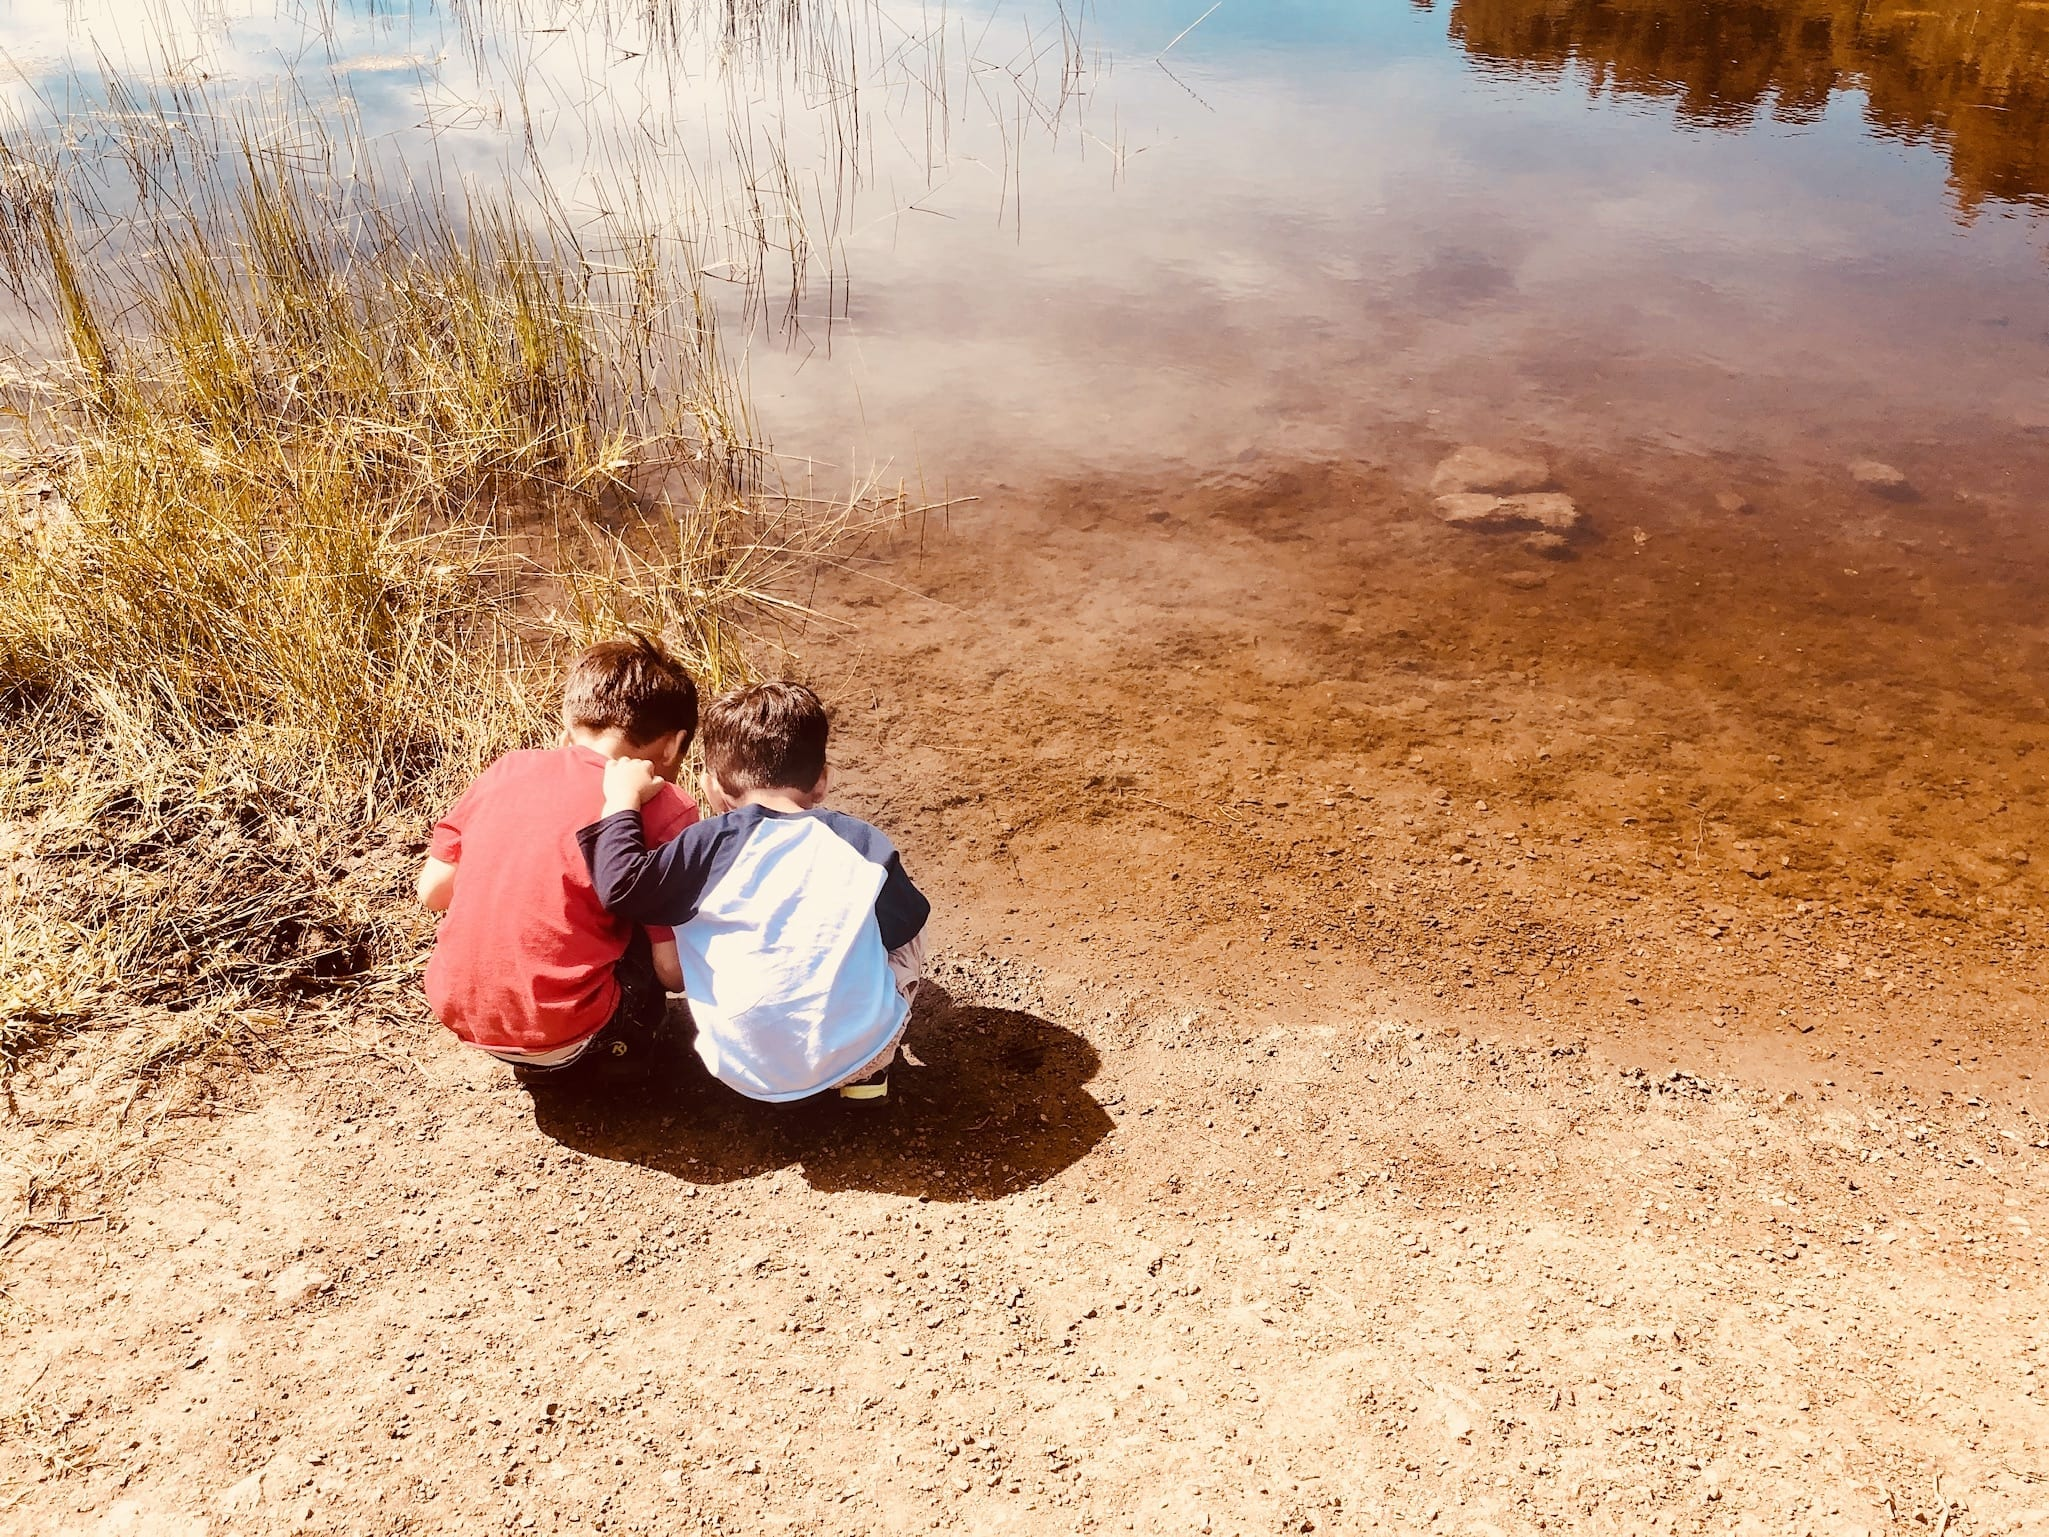 Anderson Lake County Park: Easy Family-Friendly, Dog-Friendly South Bay Hike